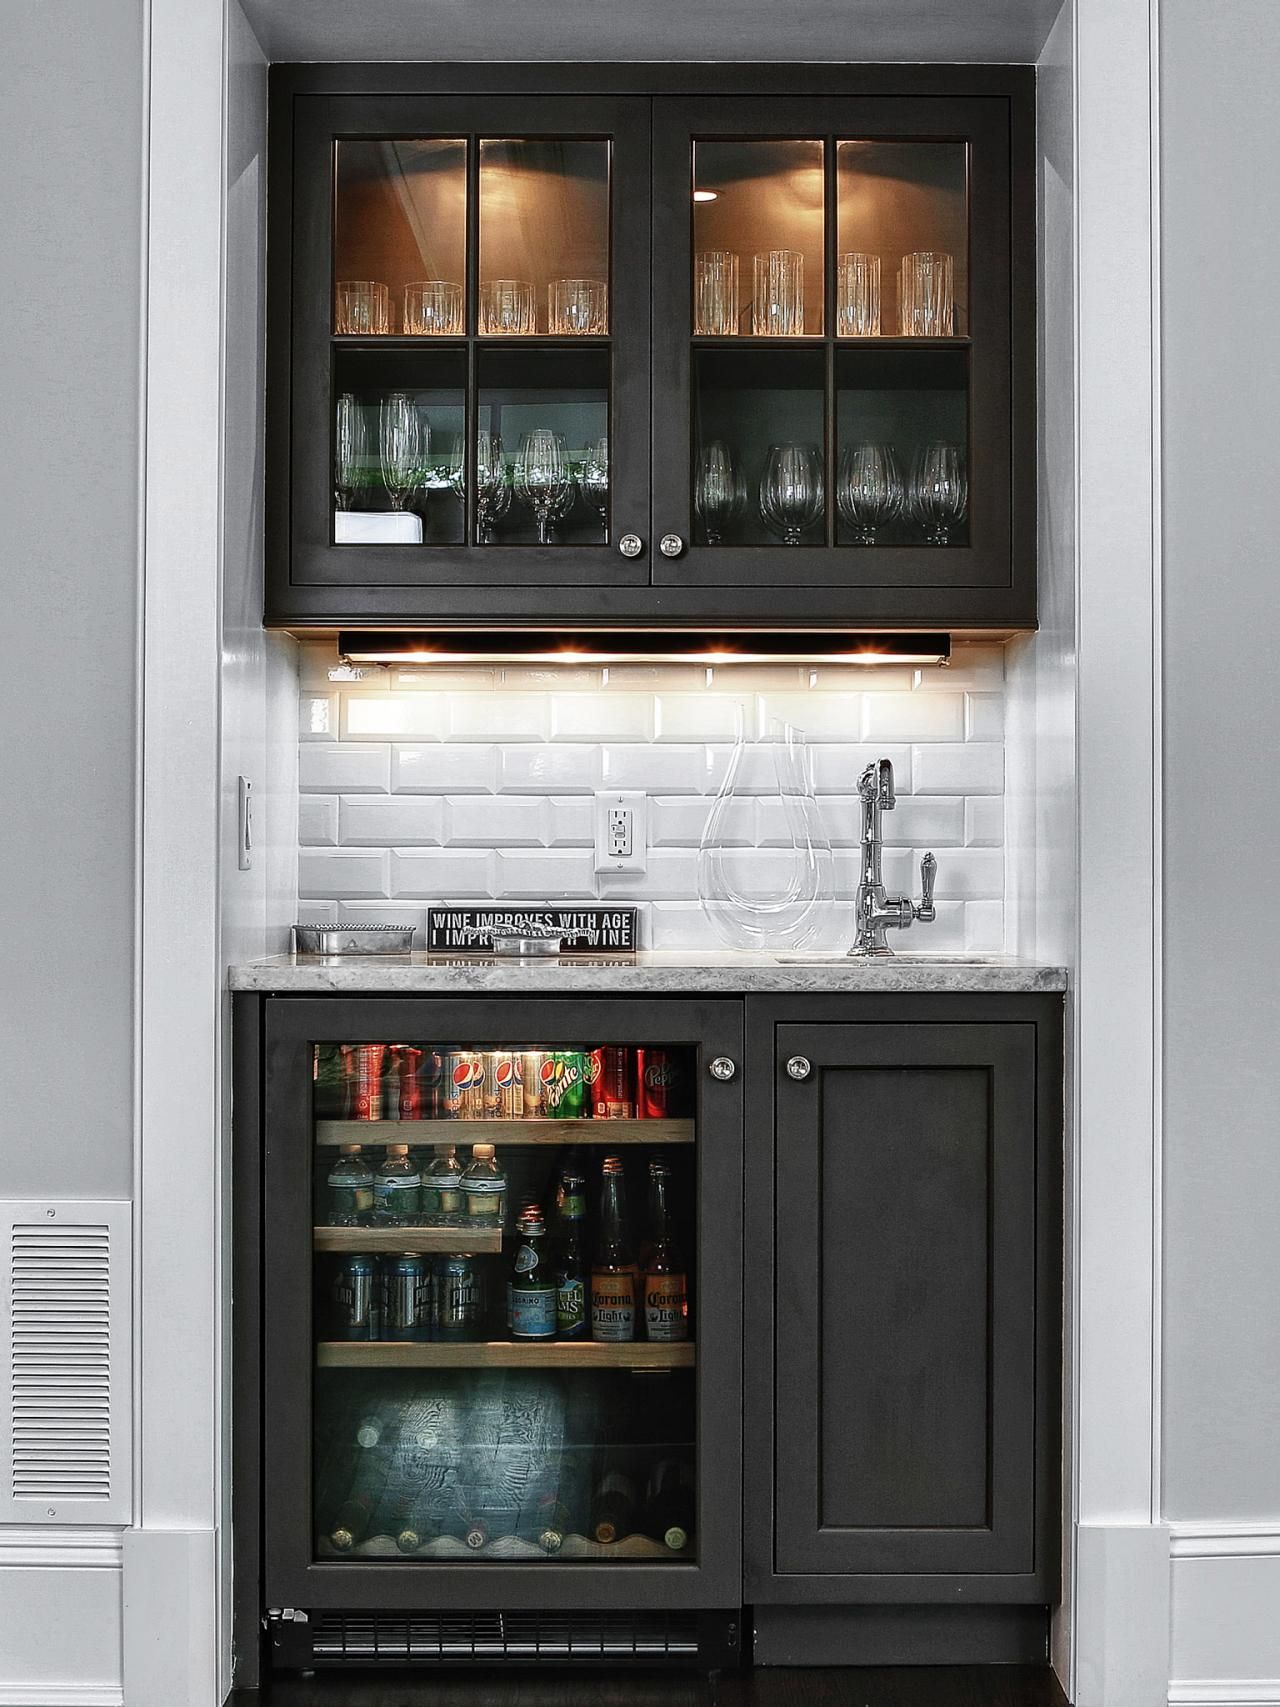 15 stylish small home bar ideas apt home bar designs bars for rh pinterest com